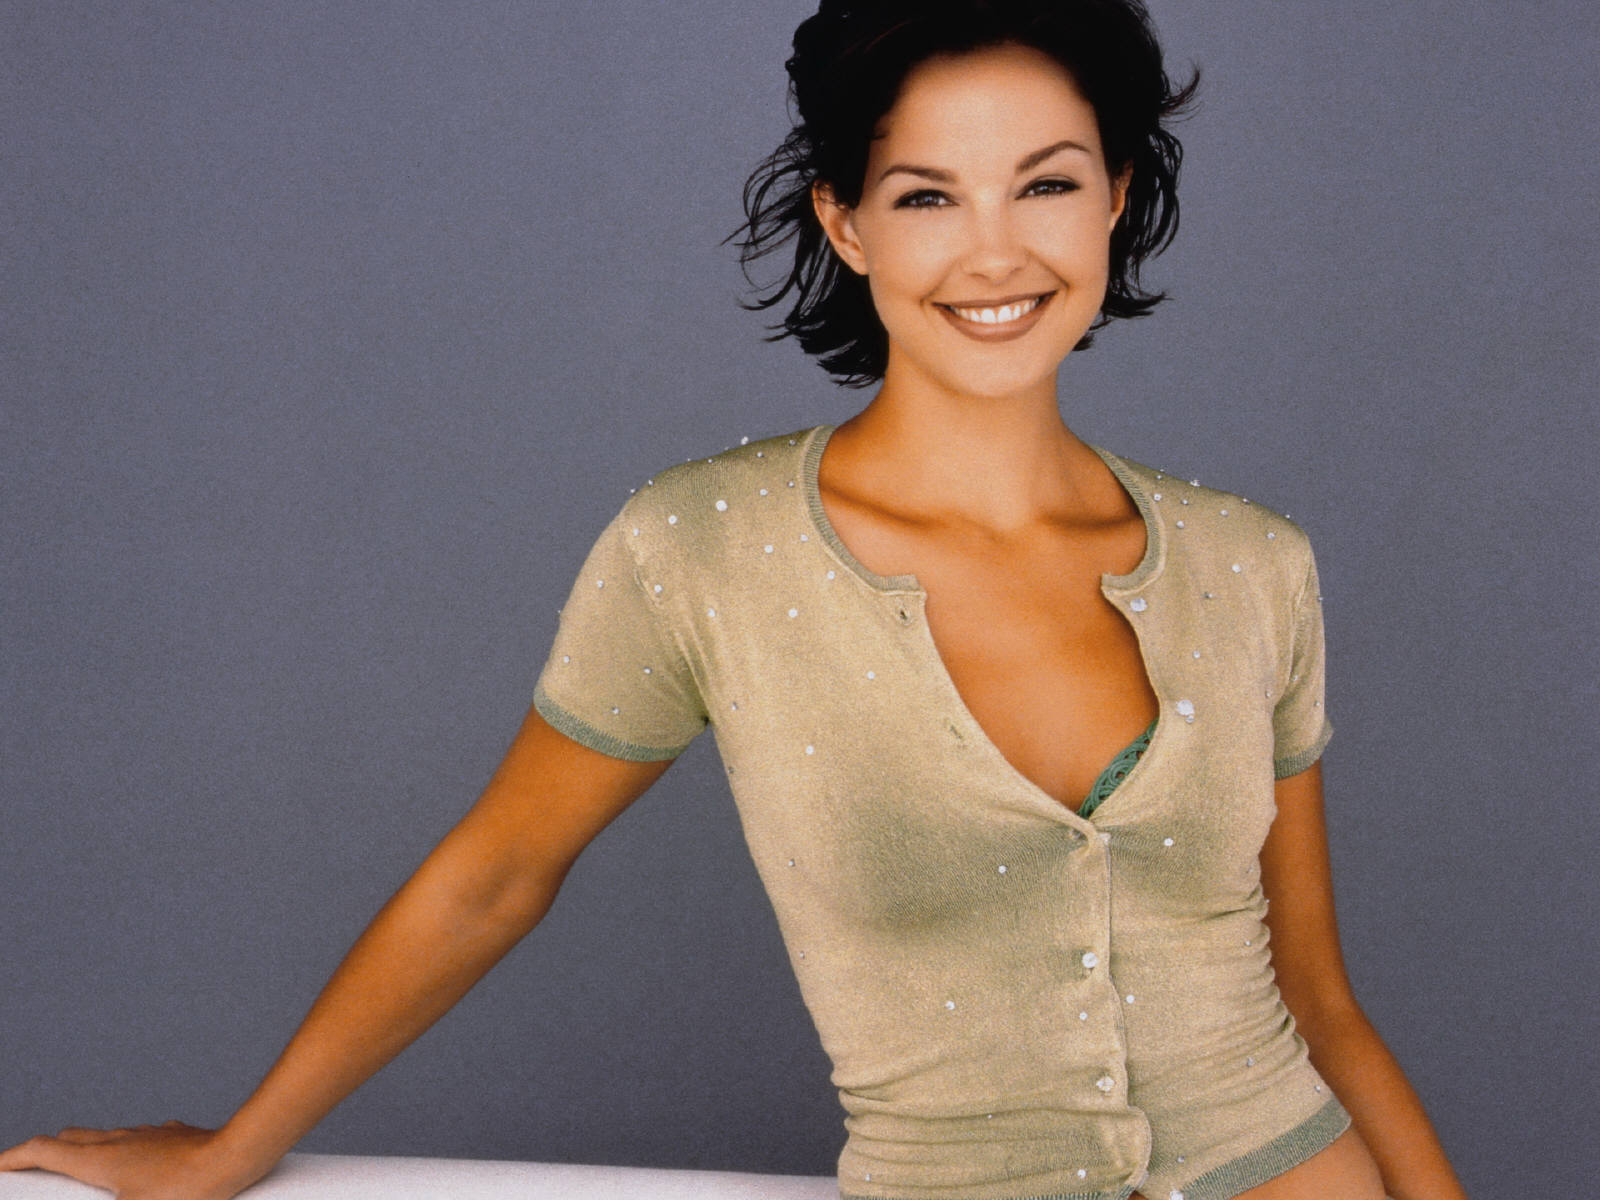 TheRightRant: Ashley Judd has a way with words